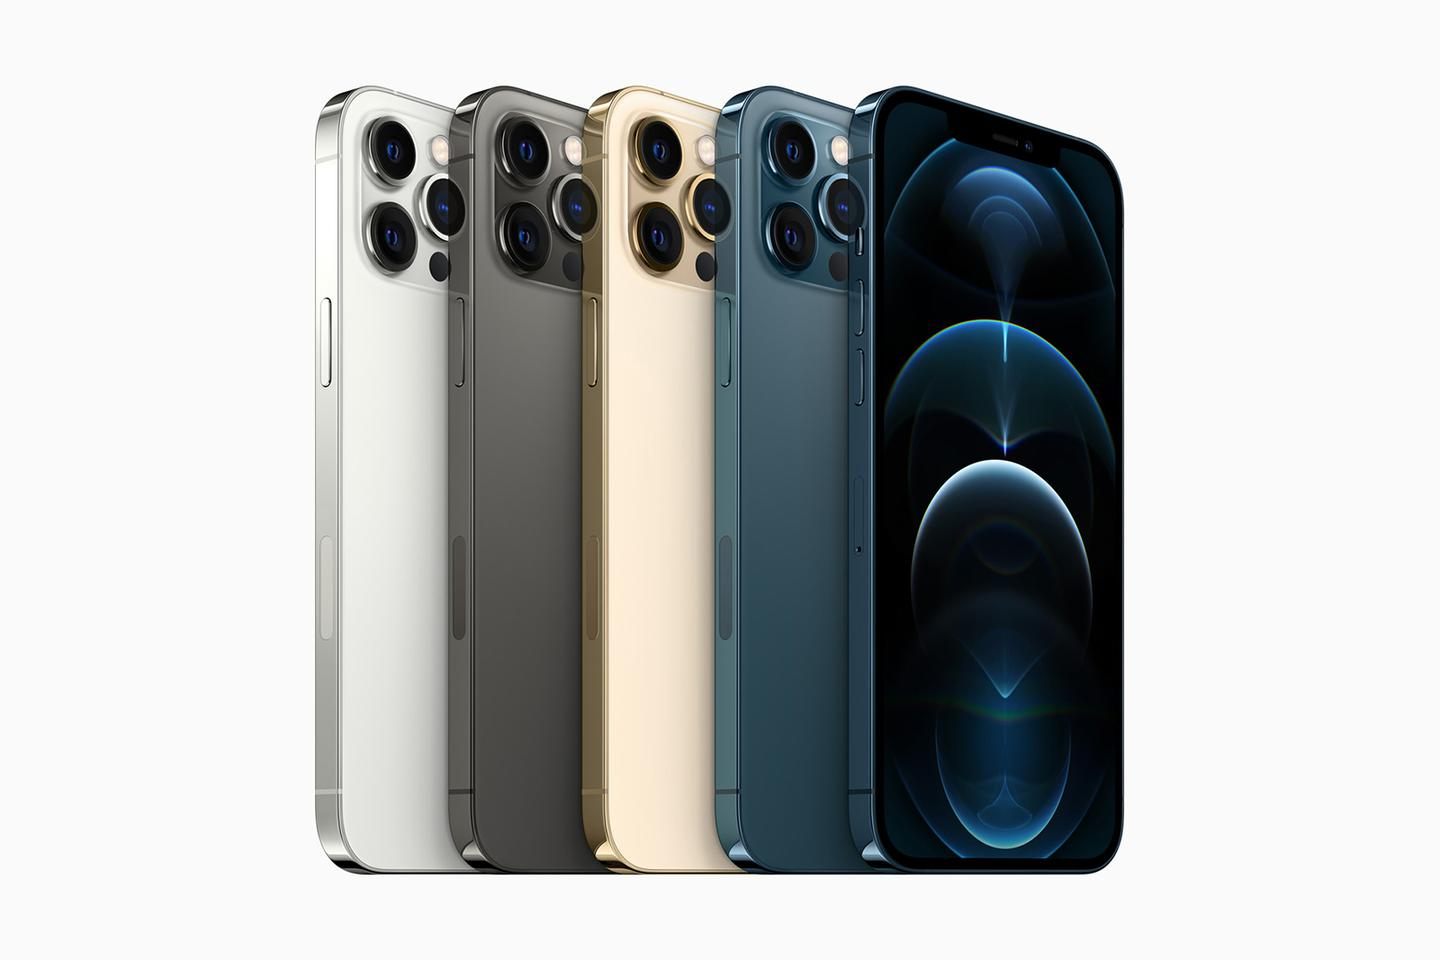 You've got four colors to pick from with the iPhone 12 Pro Max